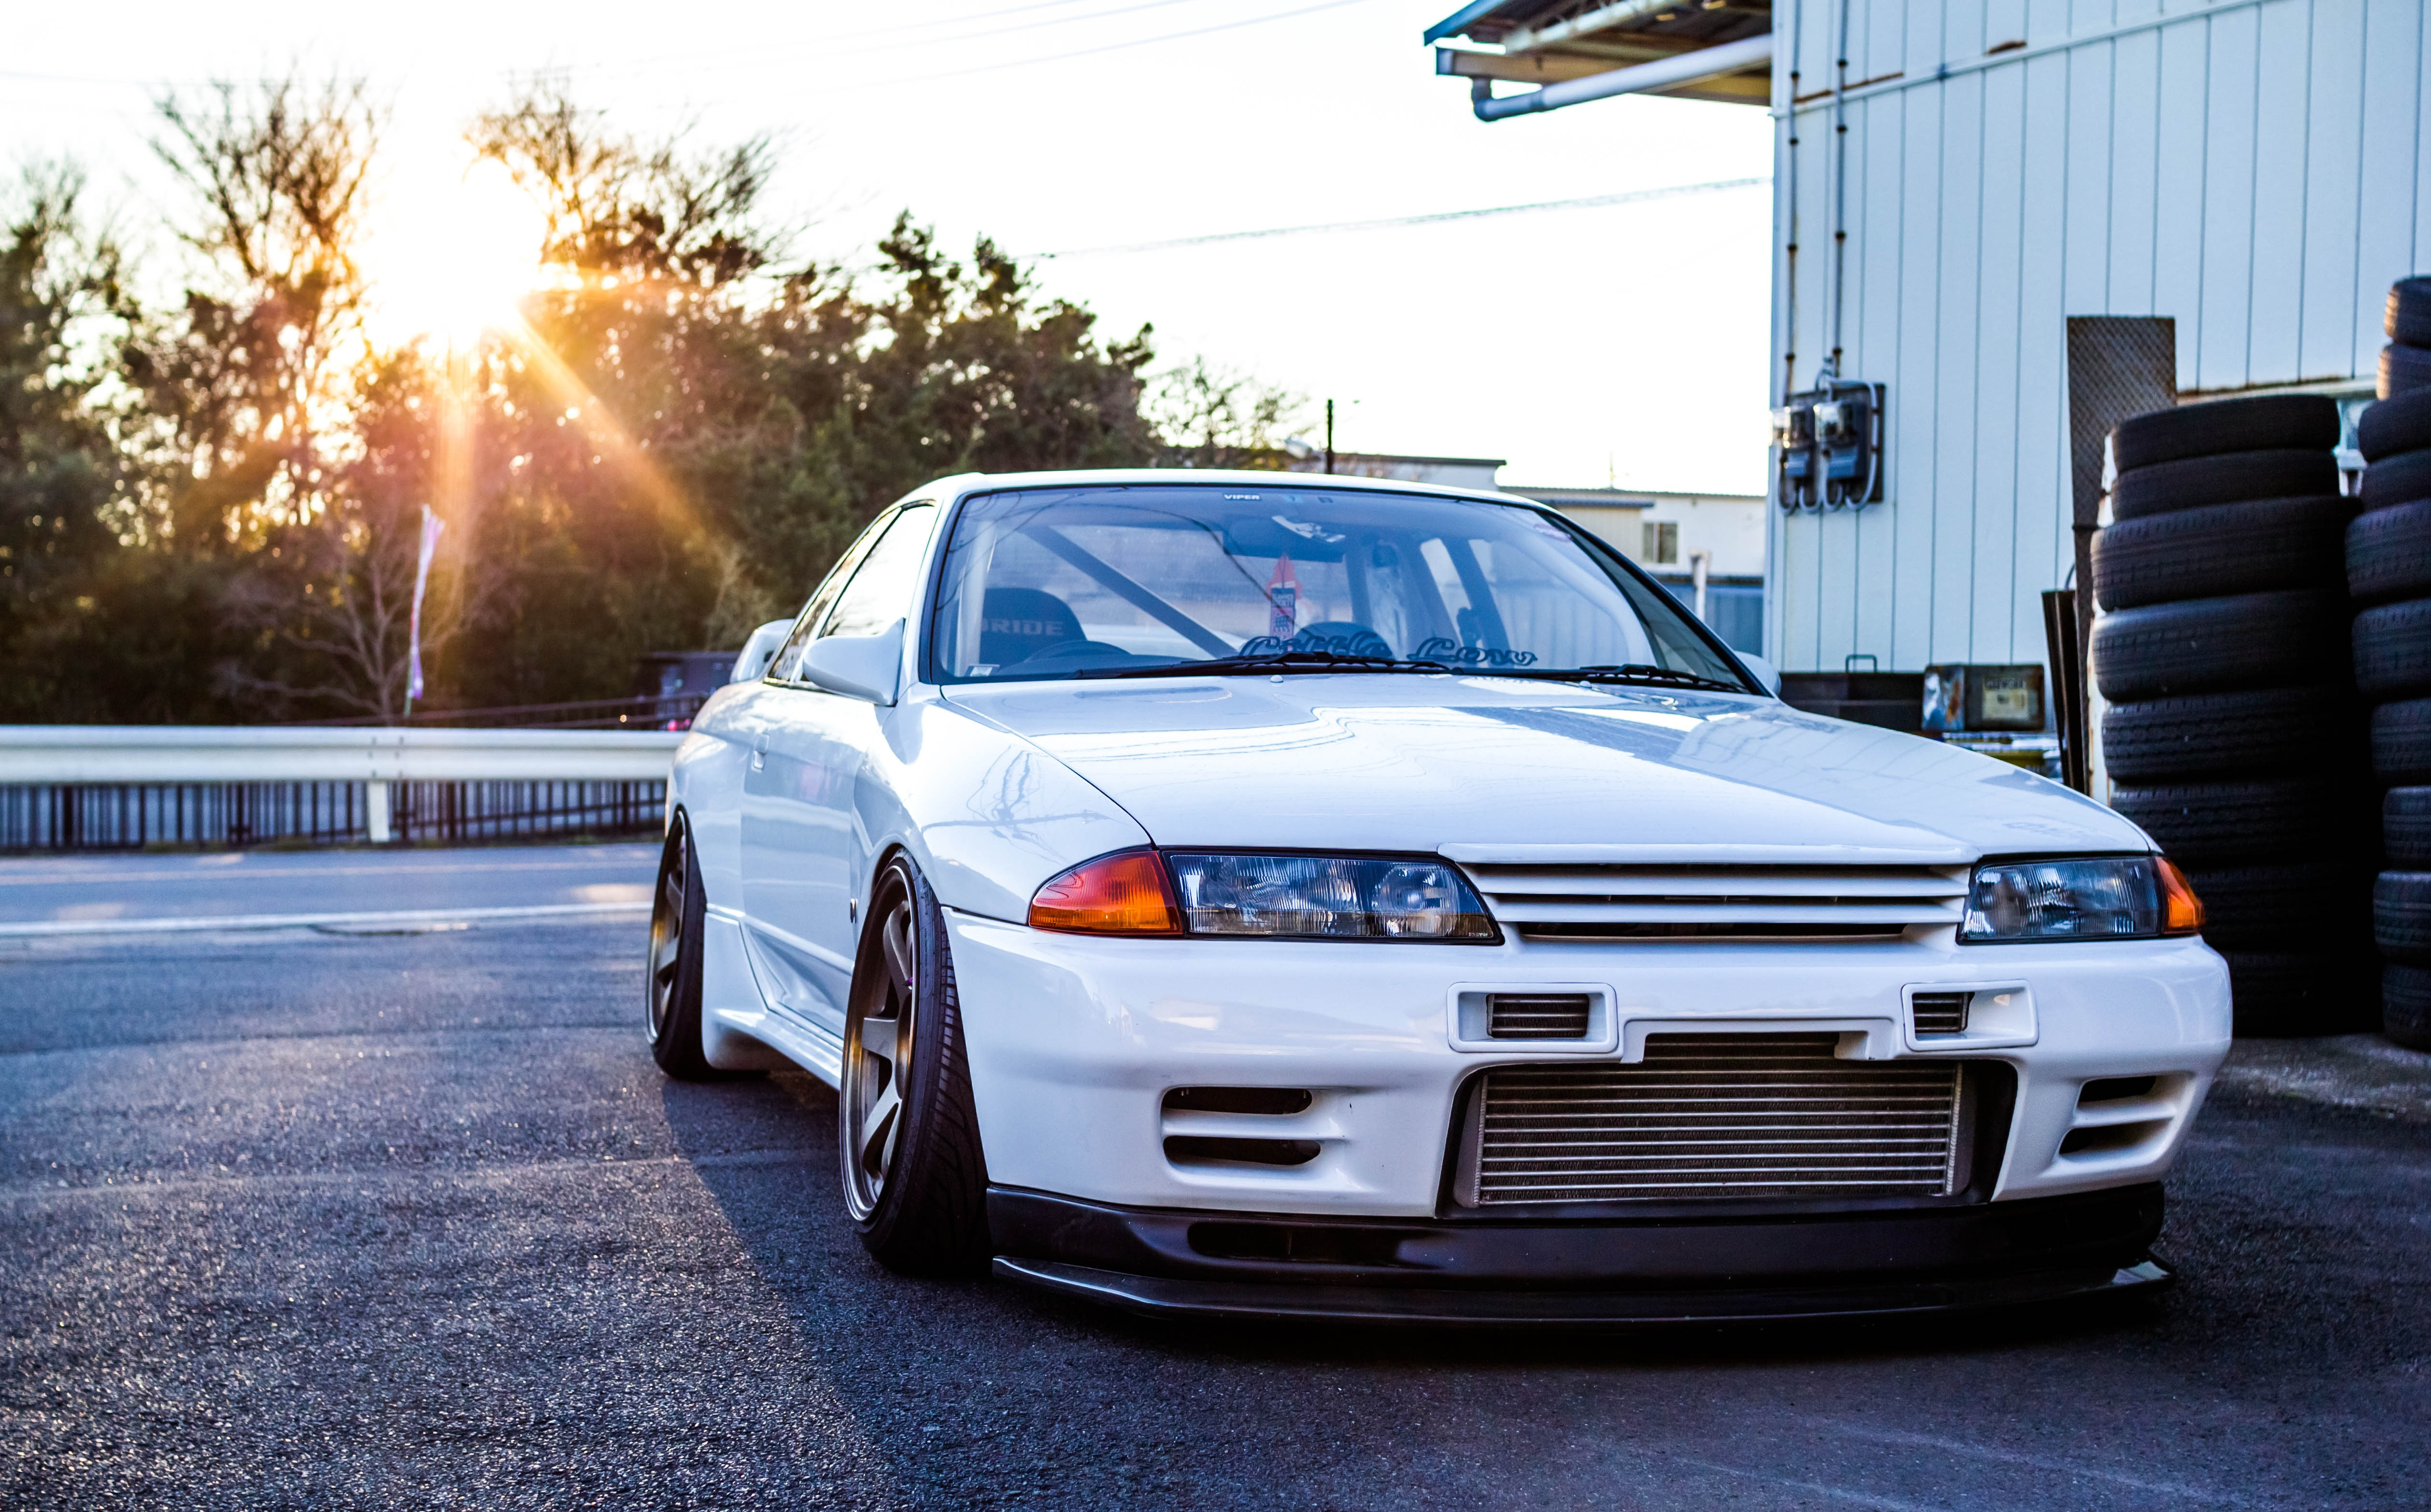 Buying a Nissan Skyline R32 GT-R - Garage Dreams